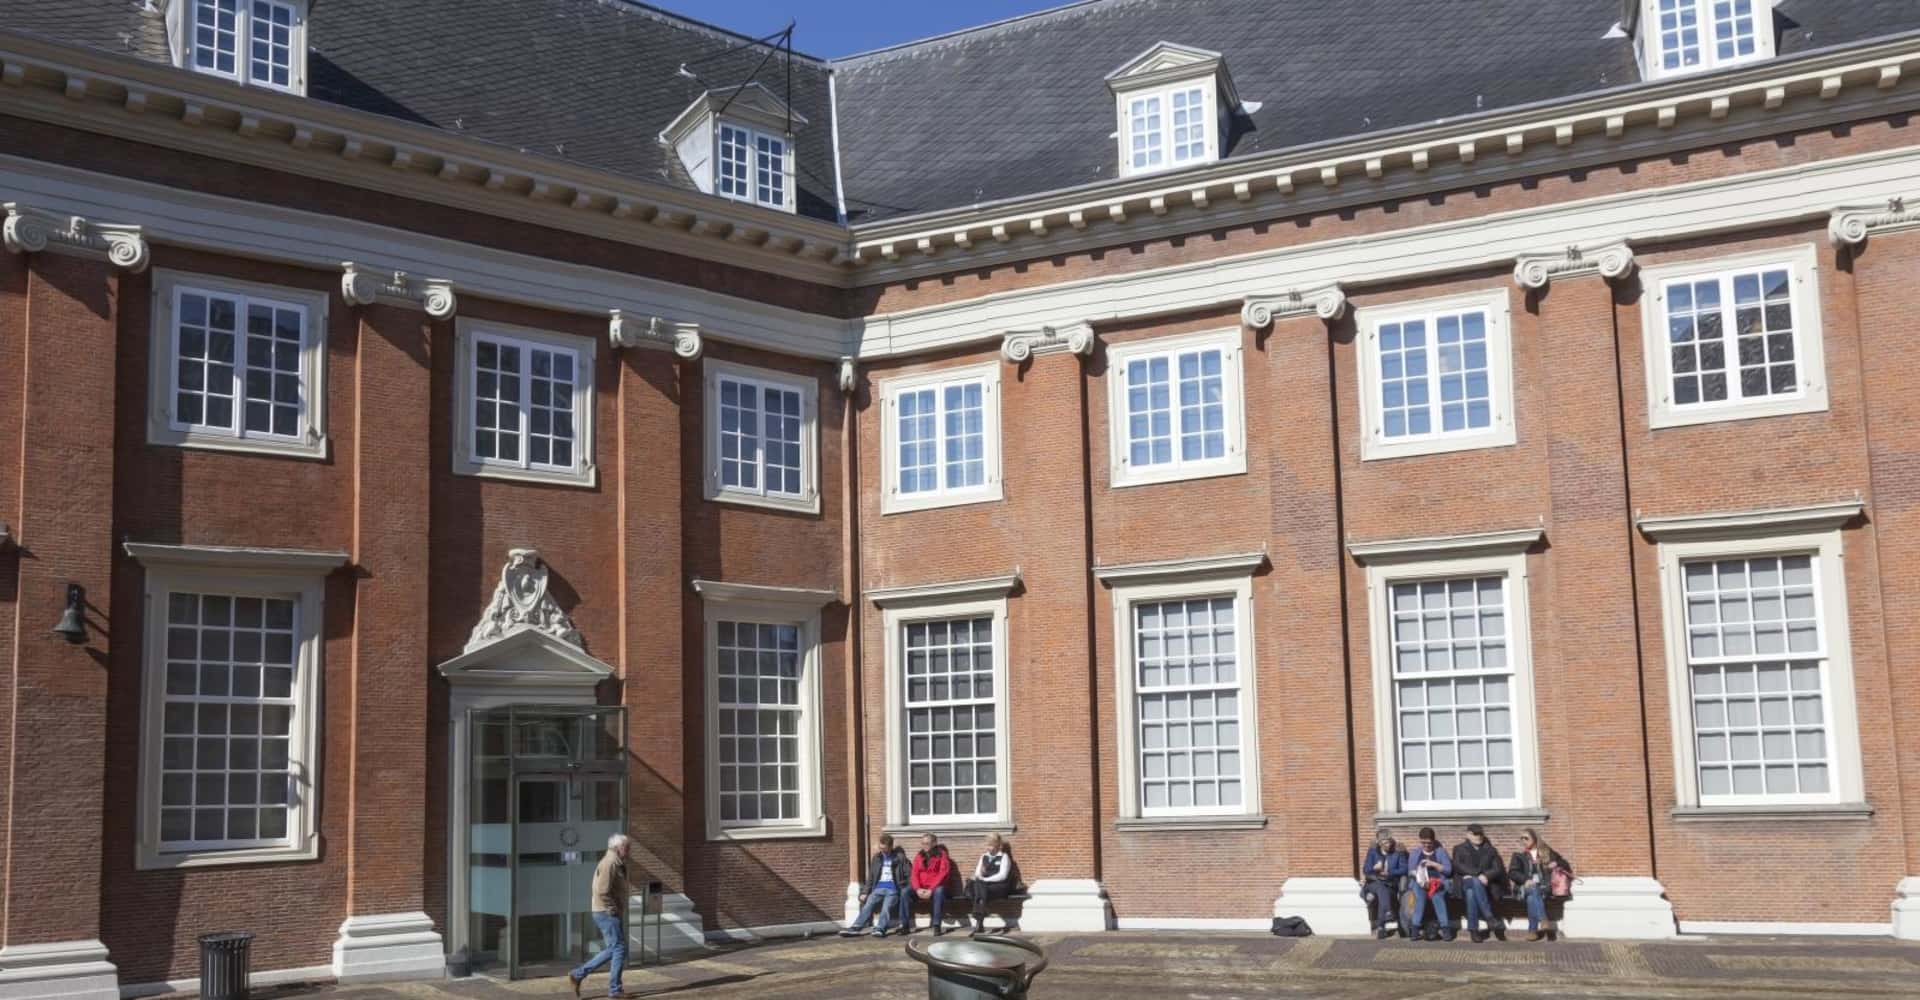 Amsterdam Museum – The Toren Amsterdam – By The Pavilions